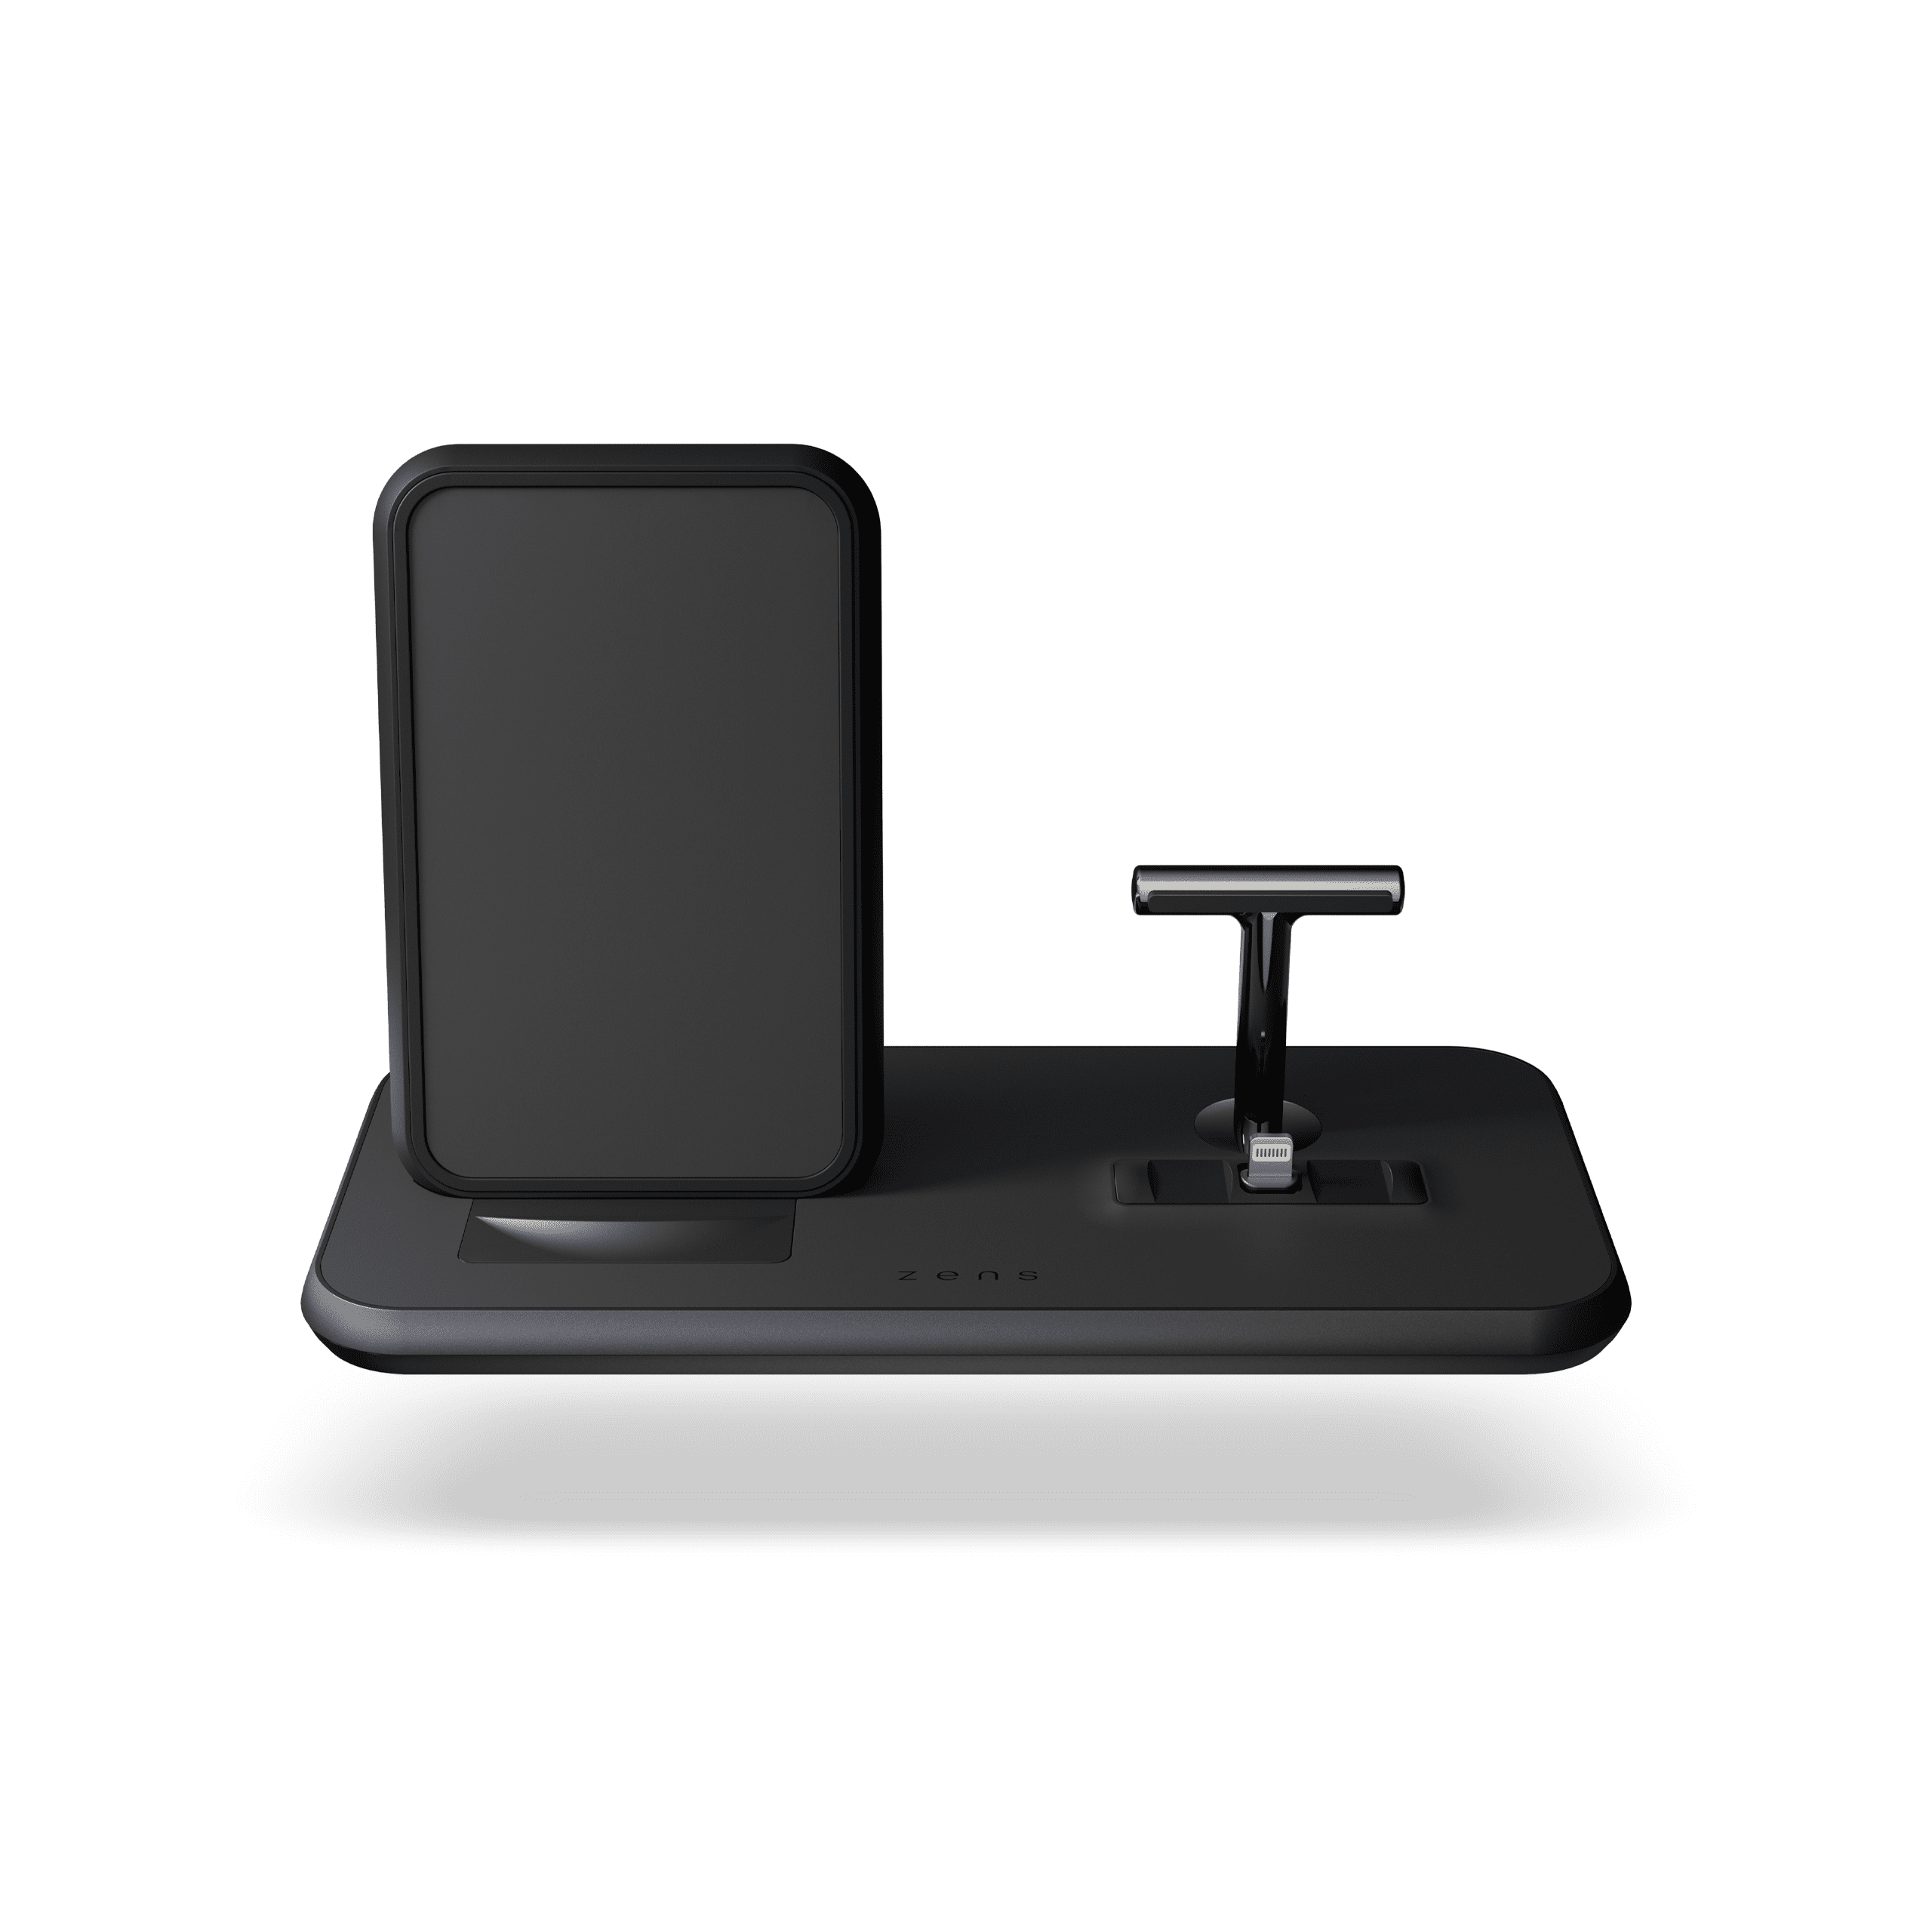 Black Stand+Dock Aluminium Wireless Charger - Airpods